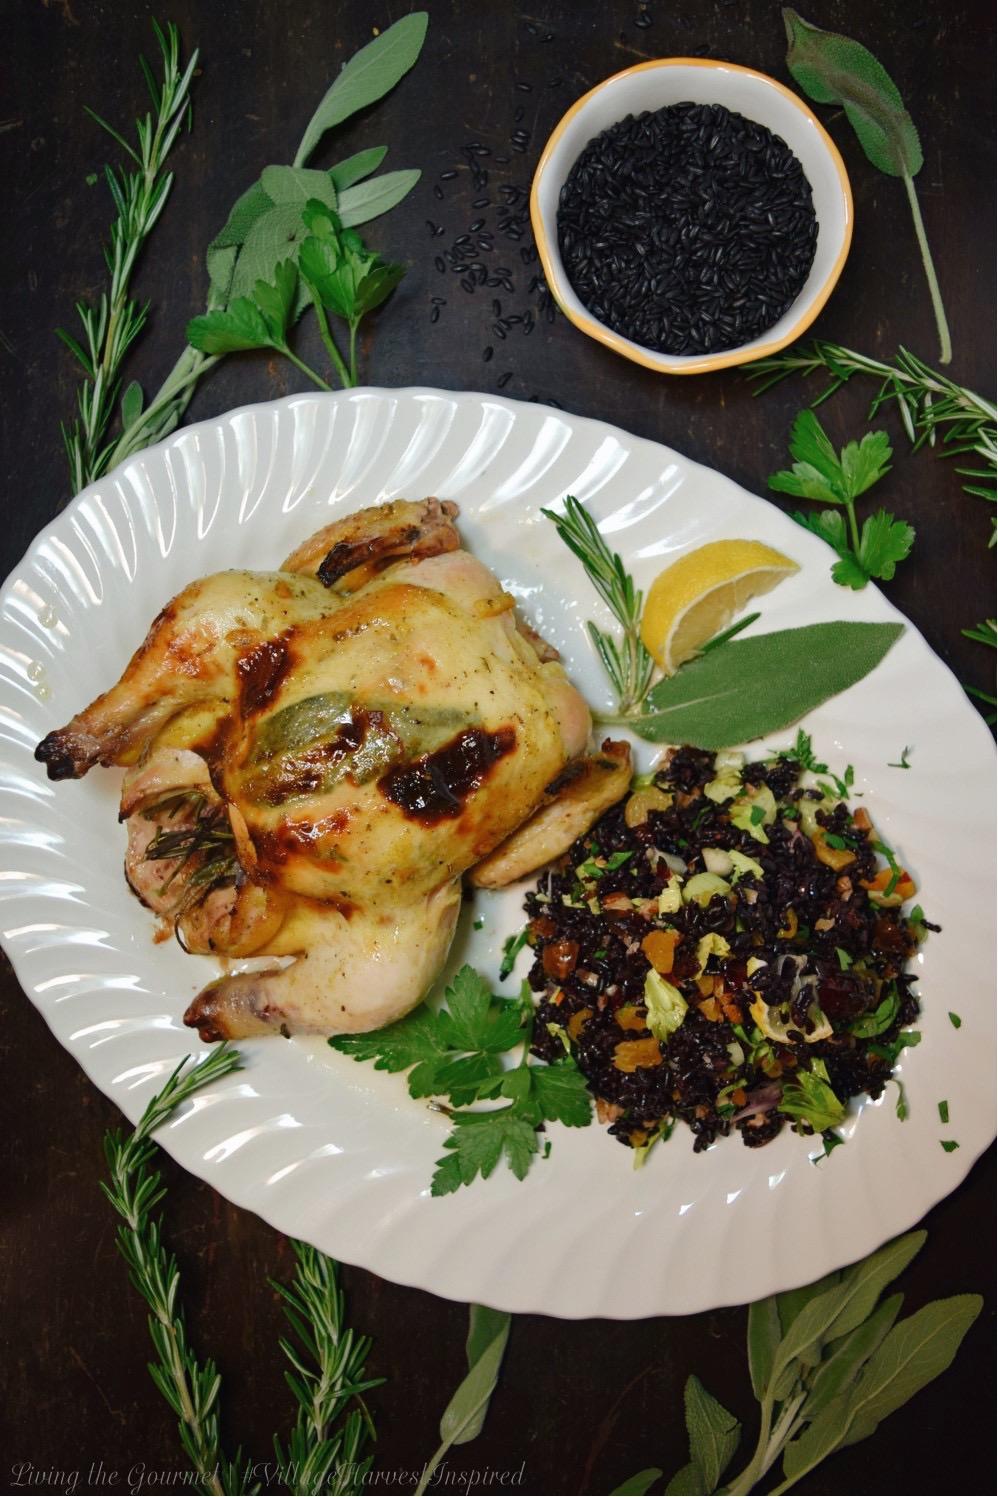 Living the Gourmet: Sage and Rosemary Cornish Hens | #VillageHarvestInspired